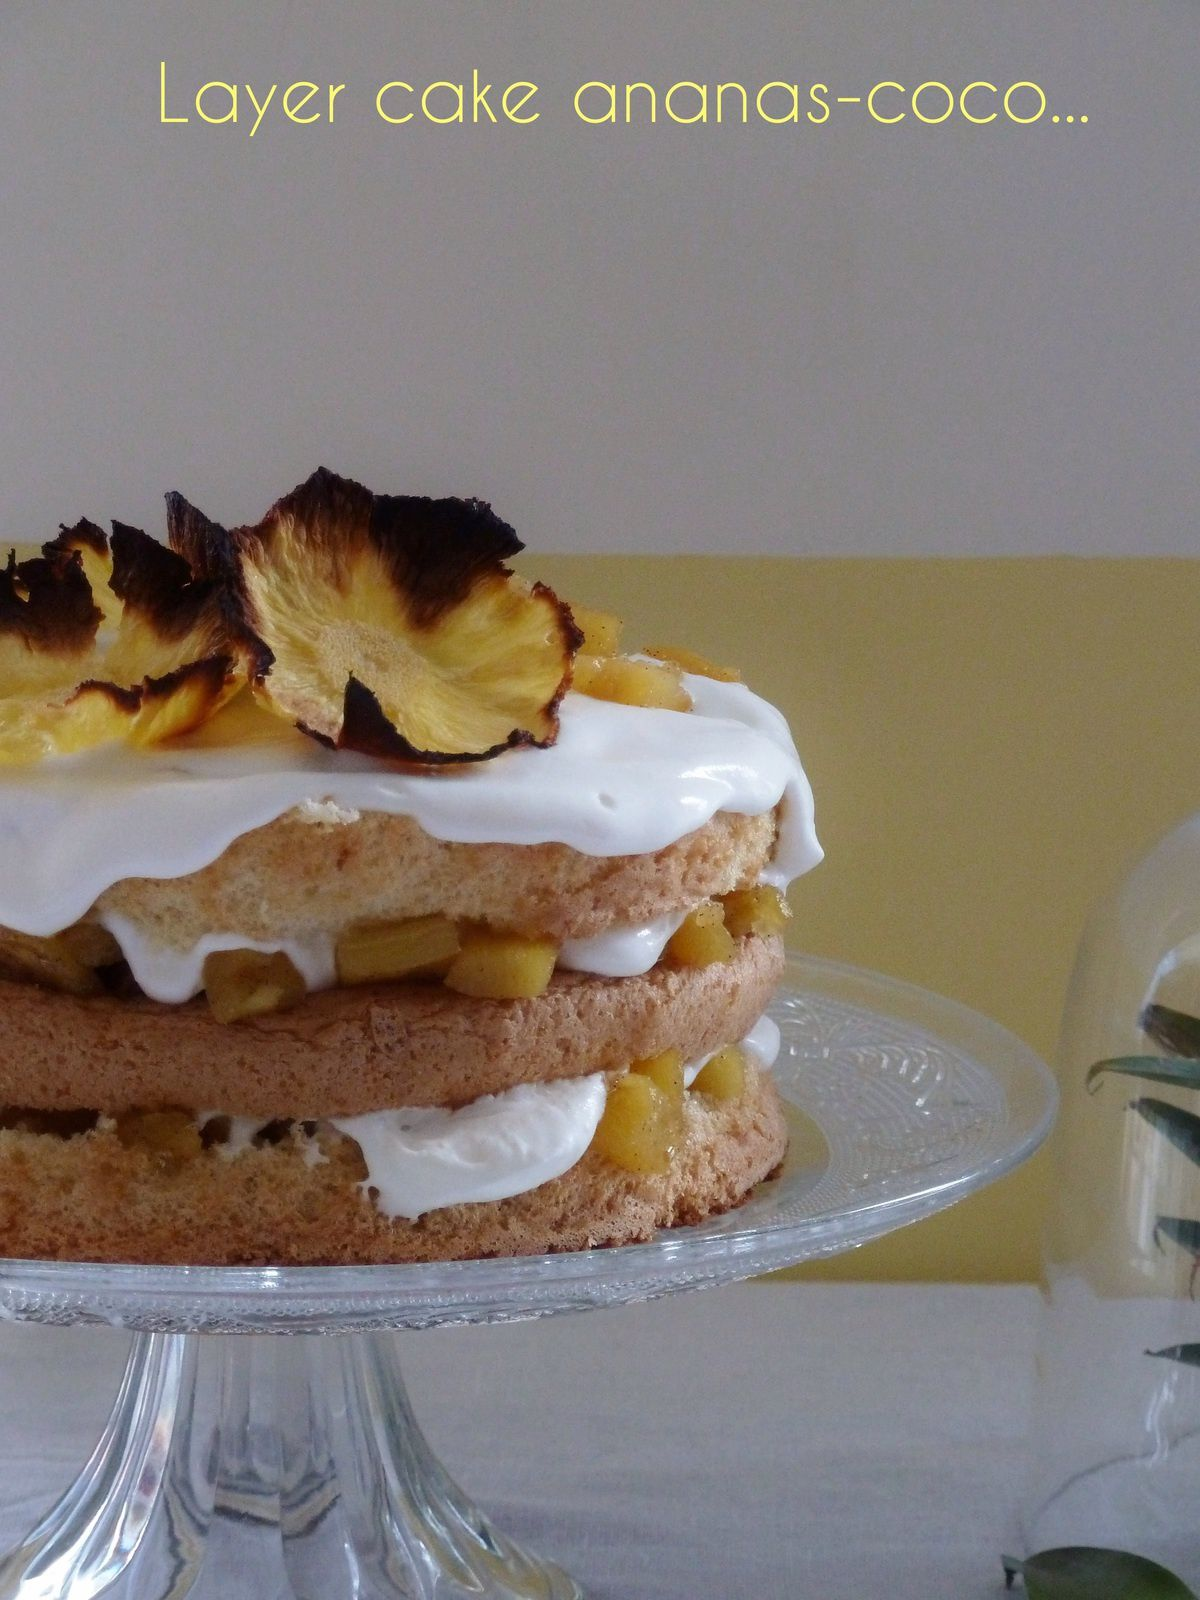 Layer cake ananas-coco